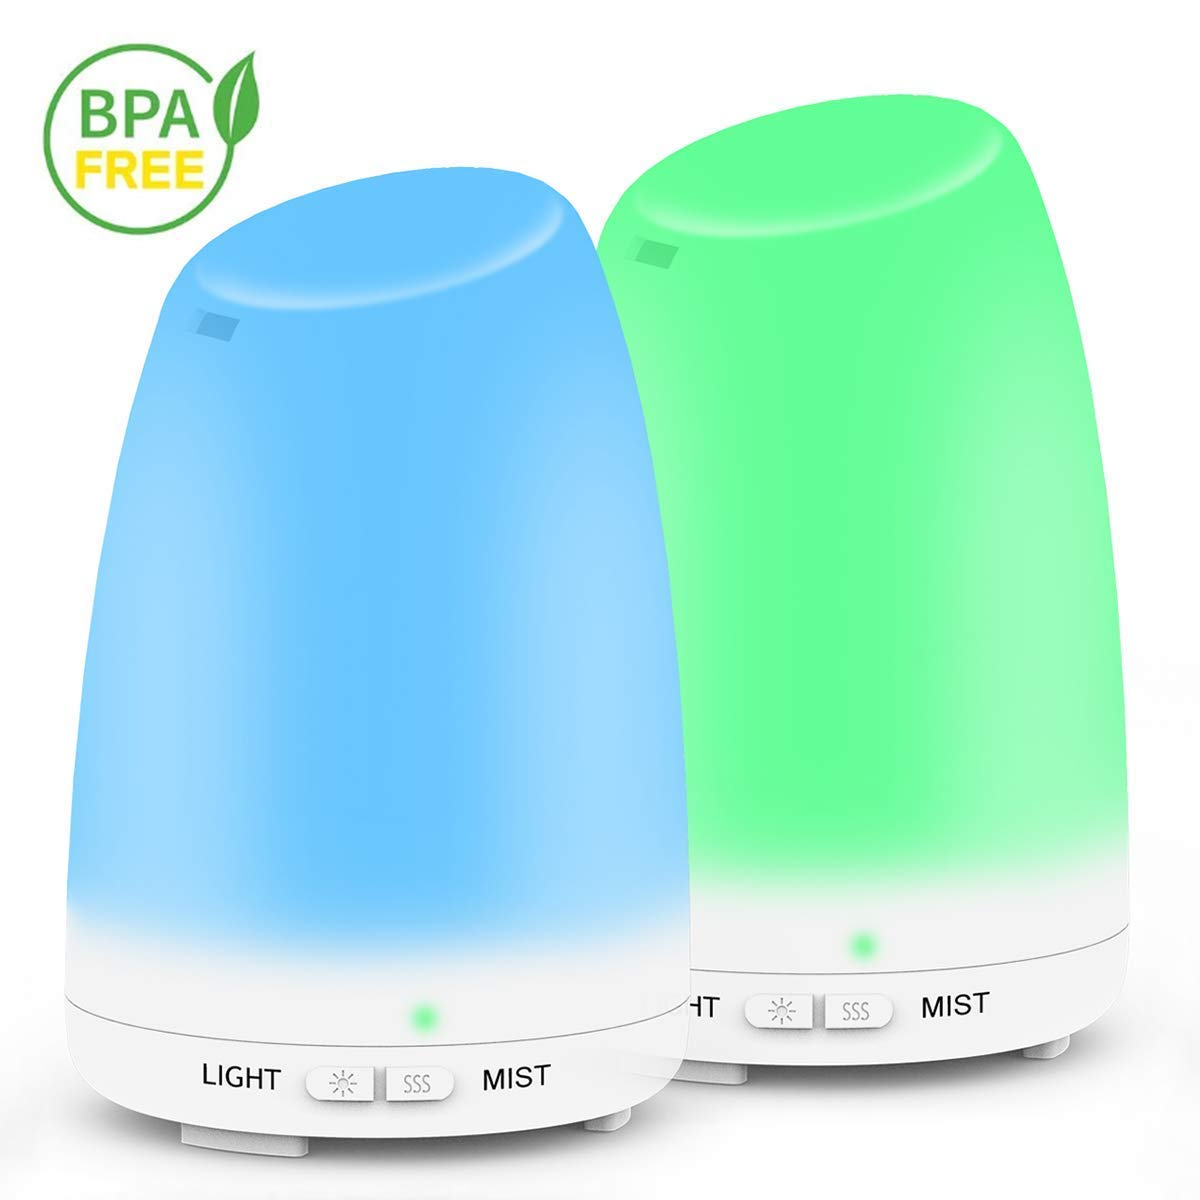 Essential Oil Diffuser, [2 pack ] 120ml Portable Aromatherapy Ultrasonic Aroma Diffuser / Cool Mist Humidifier , Waterless Auto Shut-Off and Mist Mode Adjustment for Bedroom, Nursery , Desk,Home, Office, Yoga Room,or Studio Holan